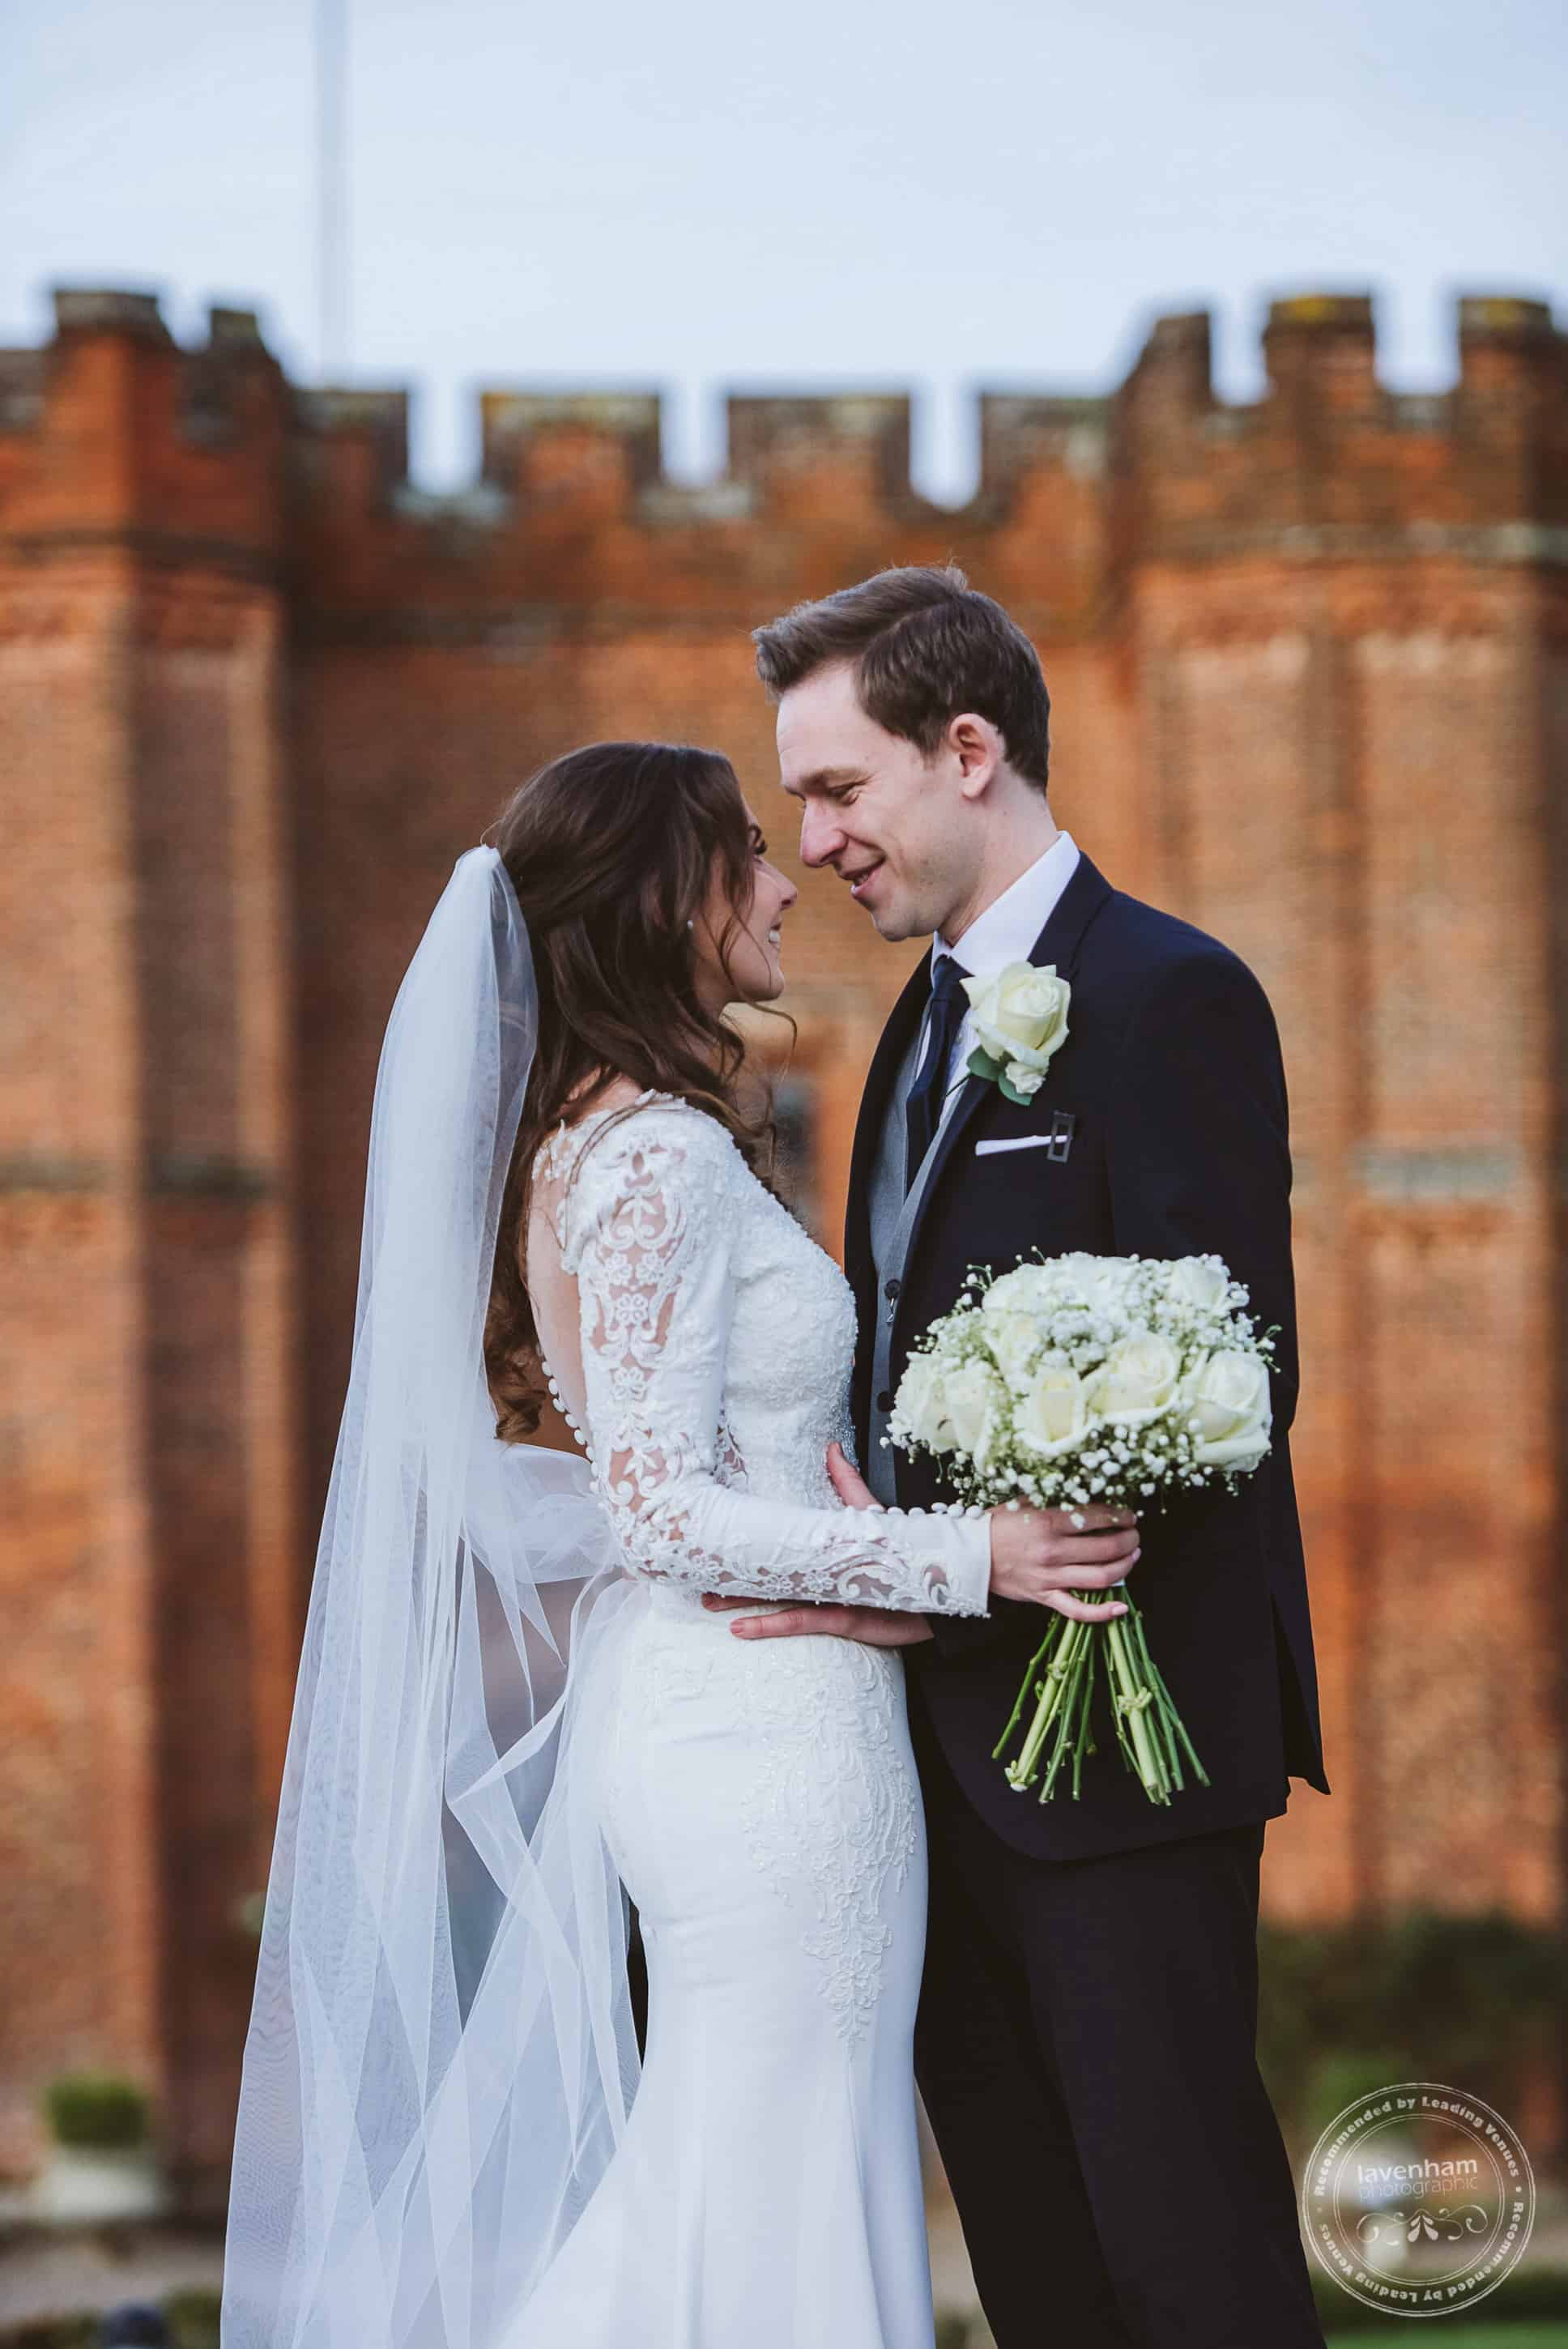 221219 Leez Priory Wedding Photoraphy 071